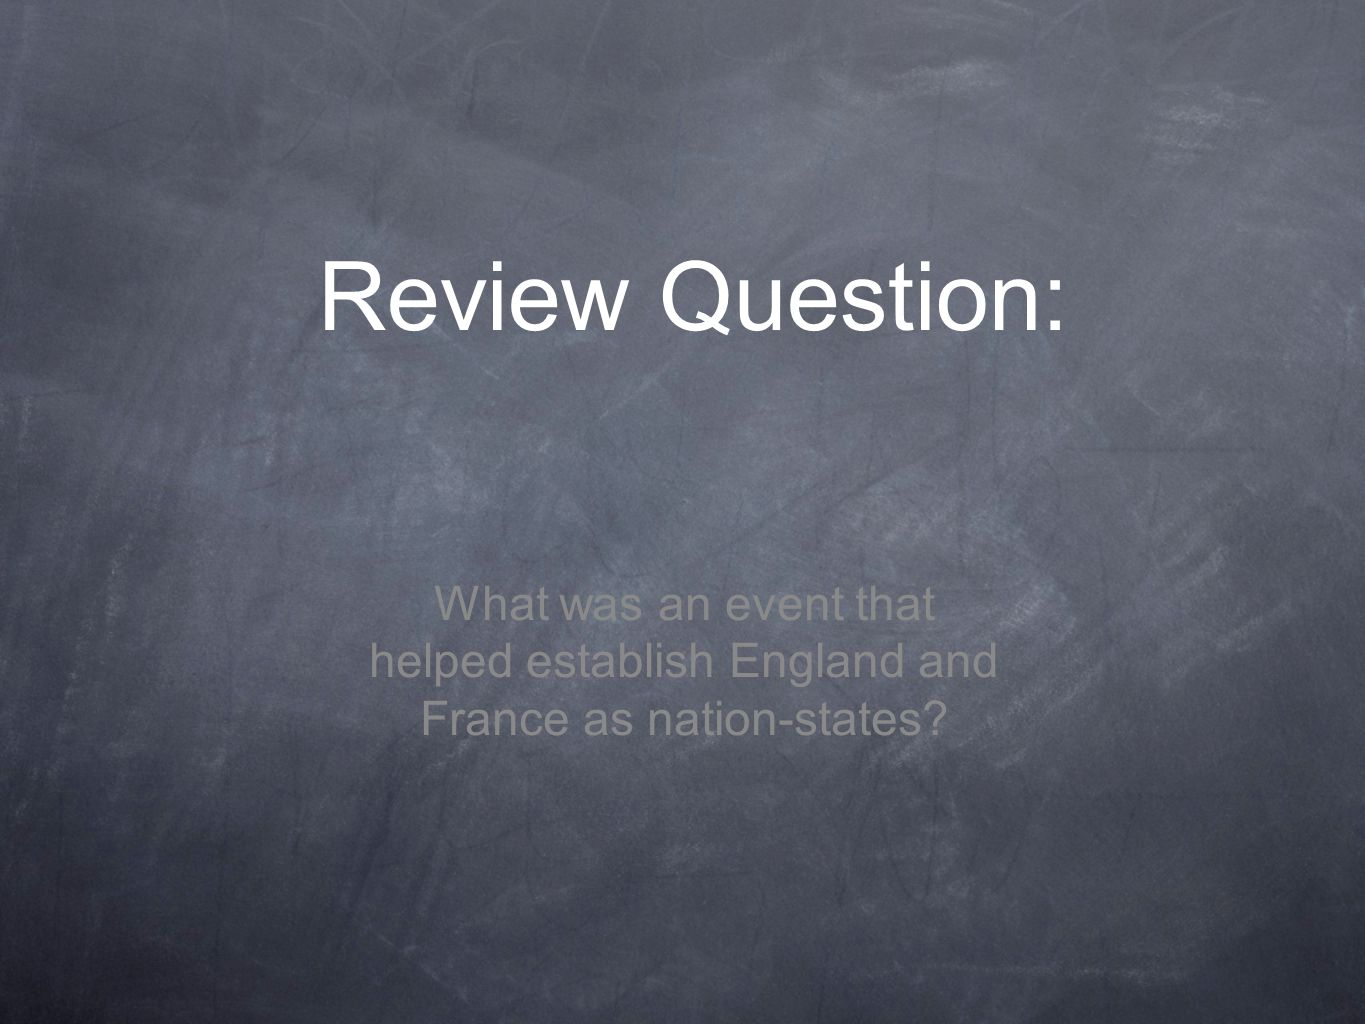 Review Question: What was an event that helped establish England and France as nation-states